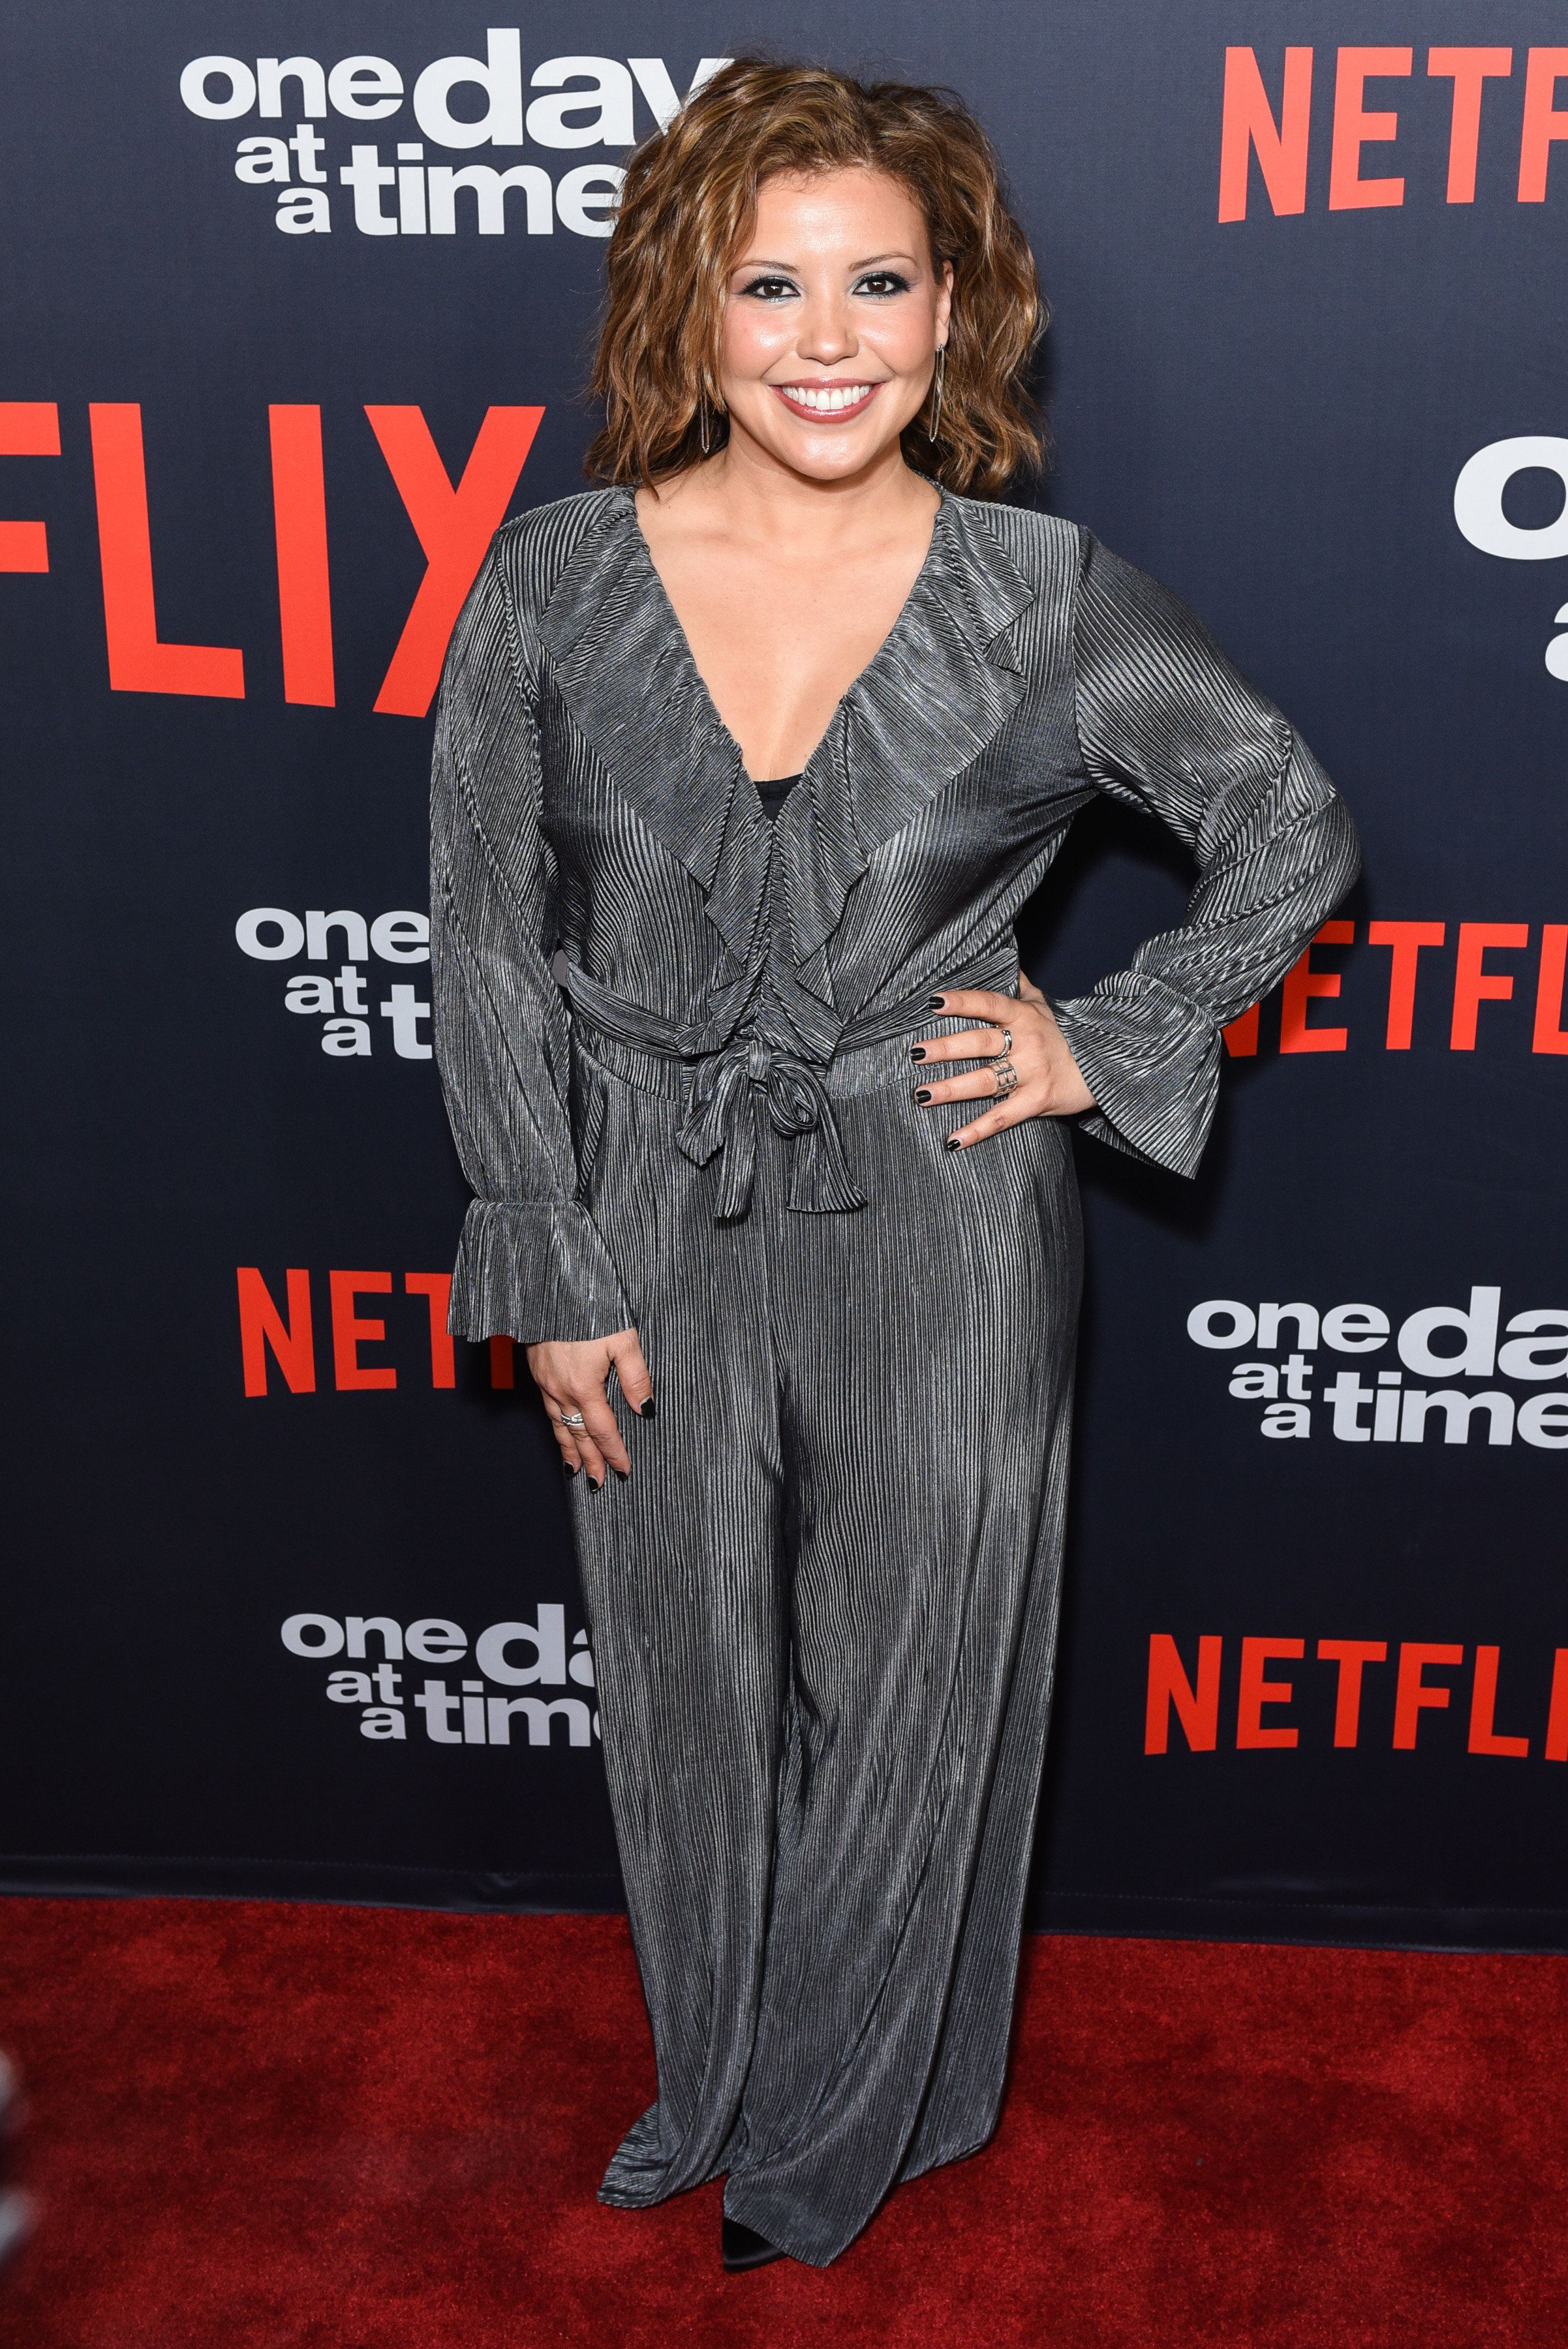 """Justina Machado attends Netflix's """"One Day At A Time"""" season two event in Los Angeles, Jan. 24, 2018."""